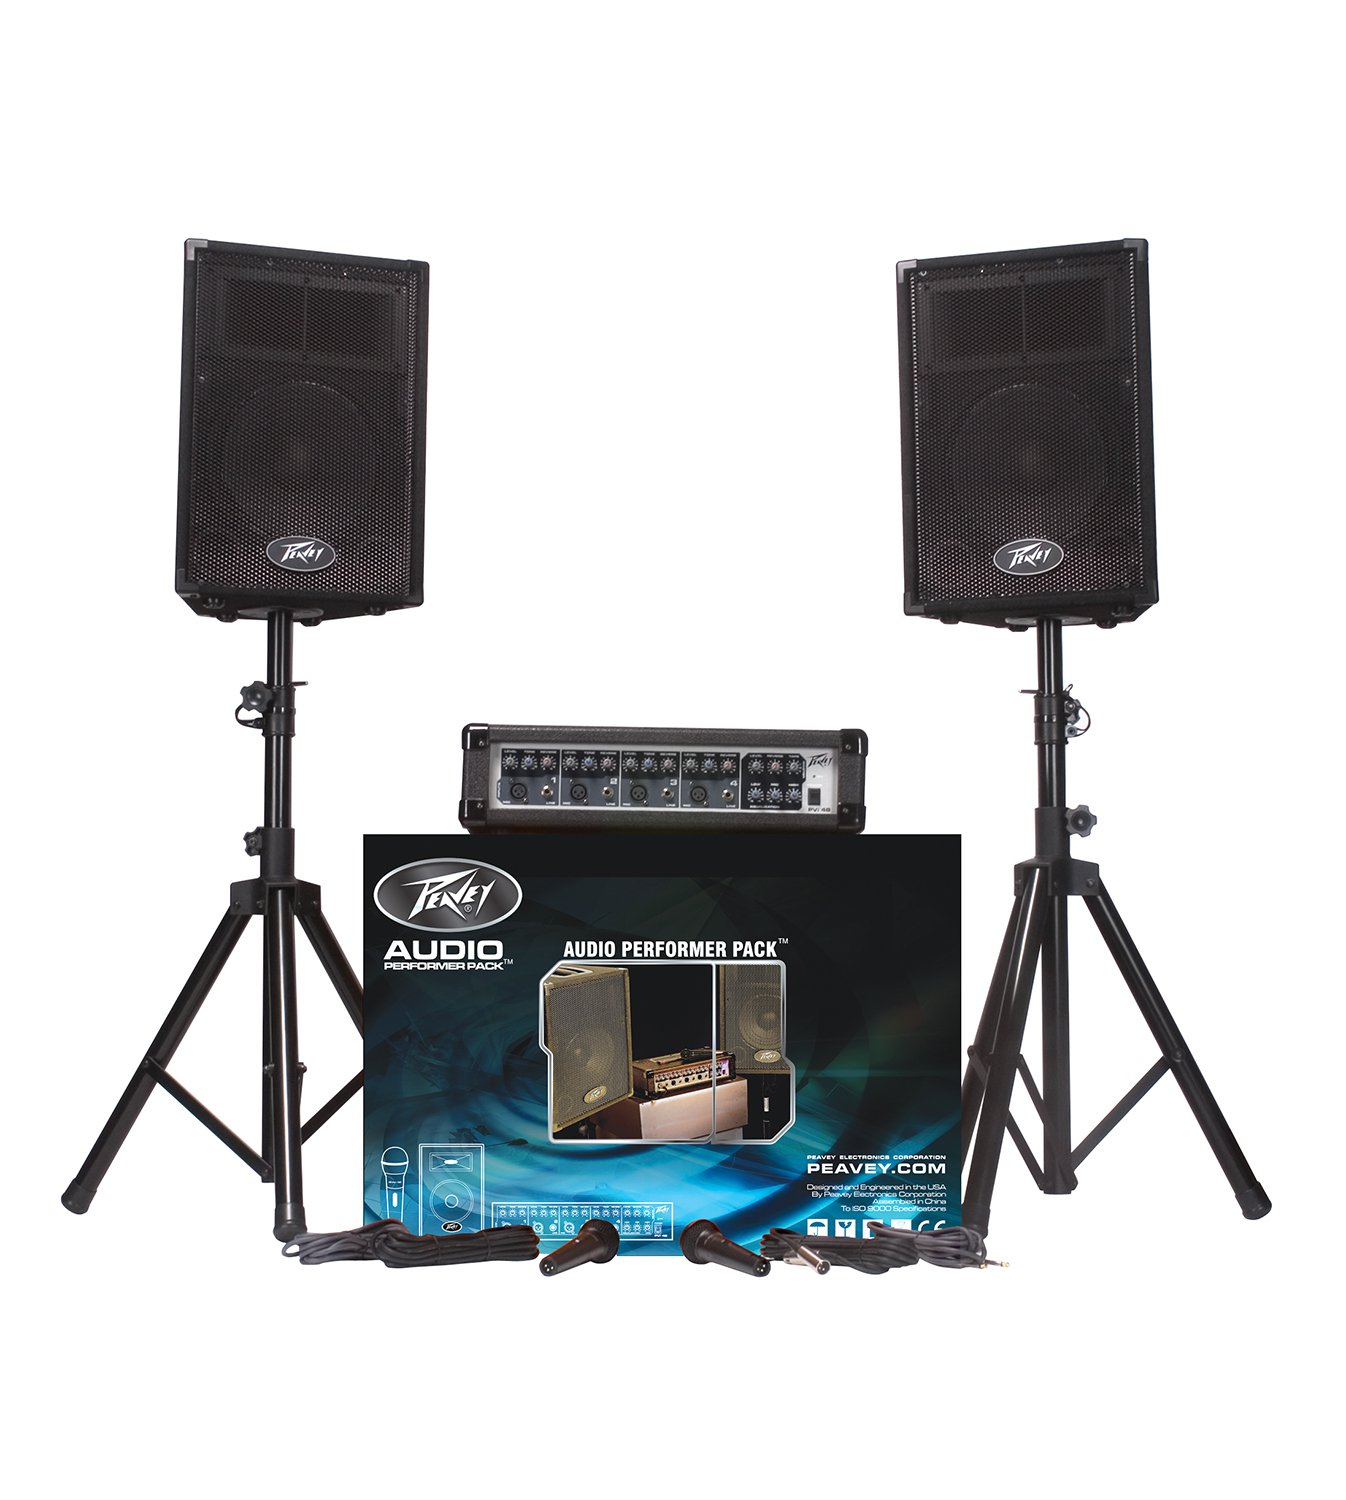 Peavey Audio Performer Pack Portable PA System